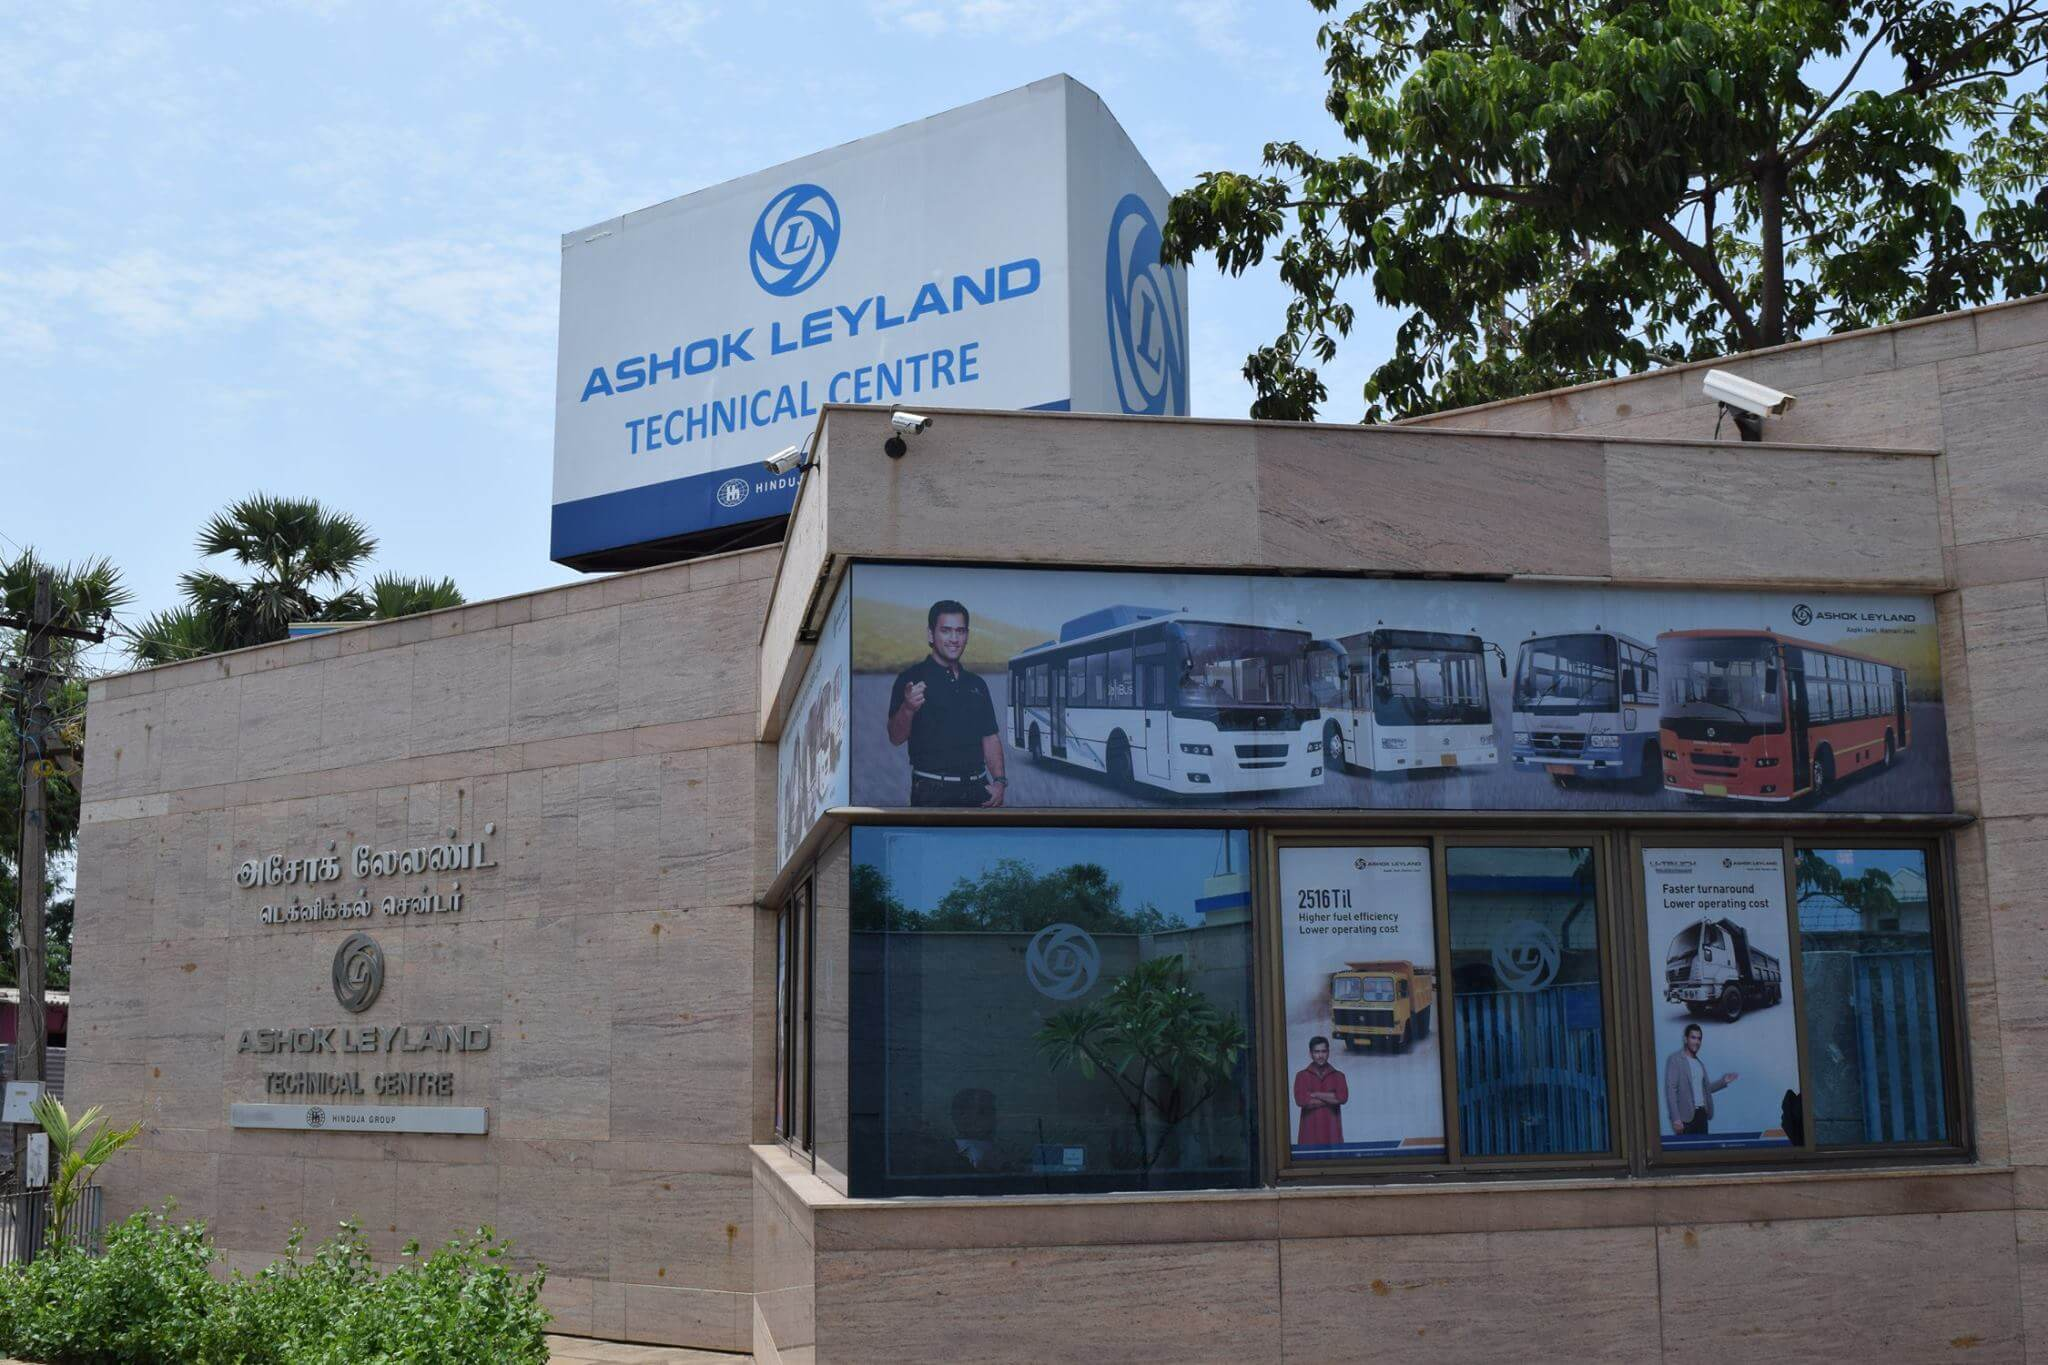 how to get an internship at ashok leyland